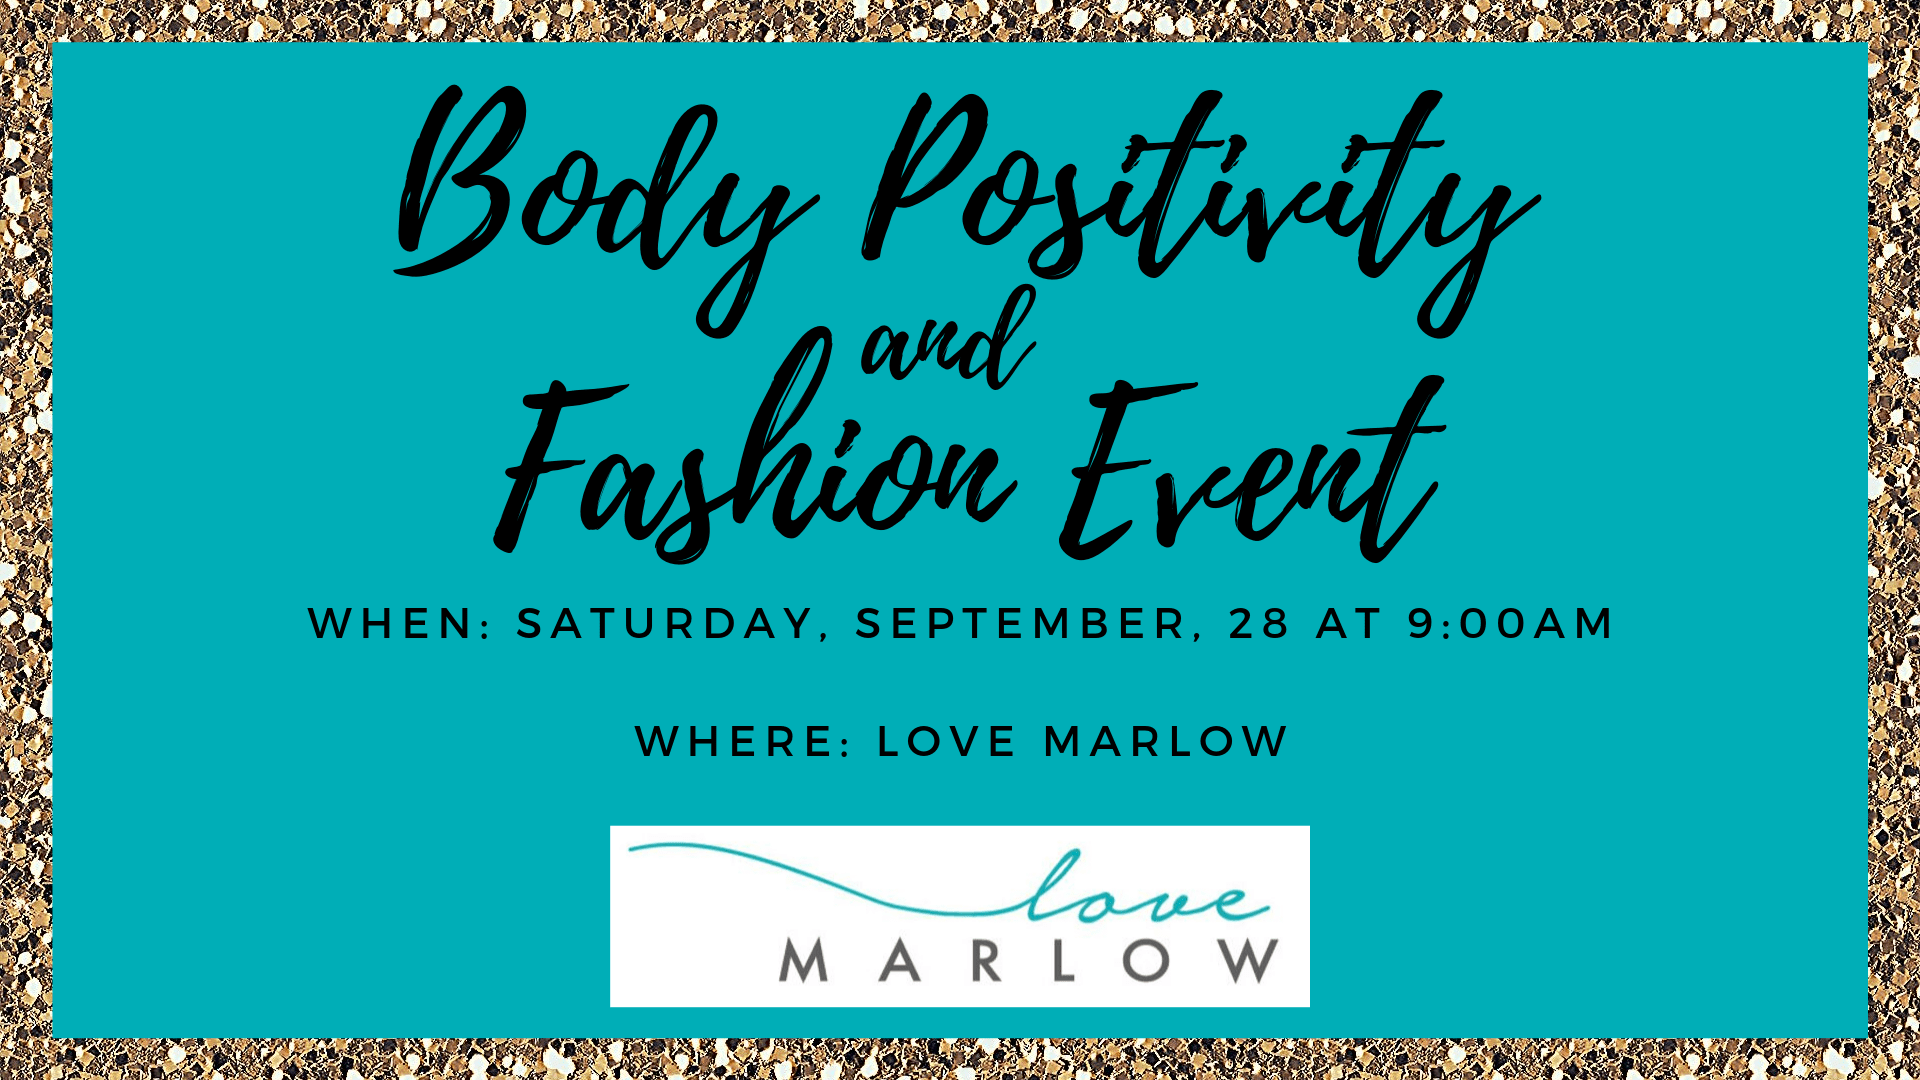 BODY POSITIVITY AND FASHION EVENT